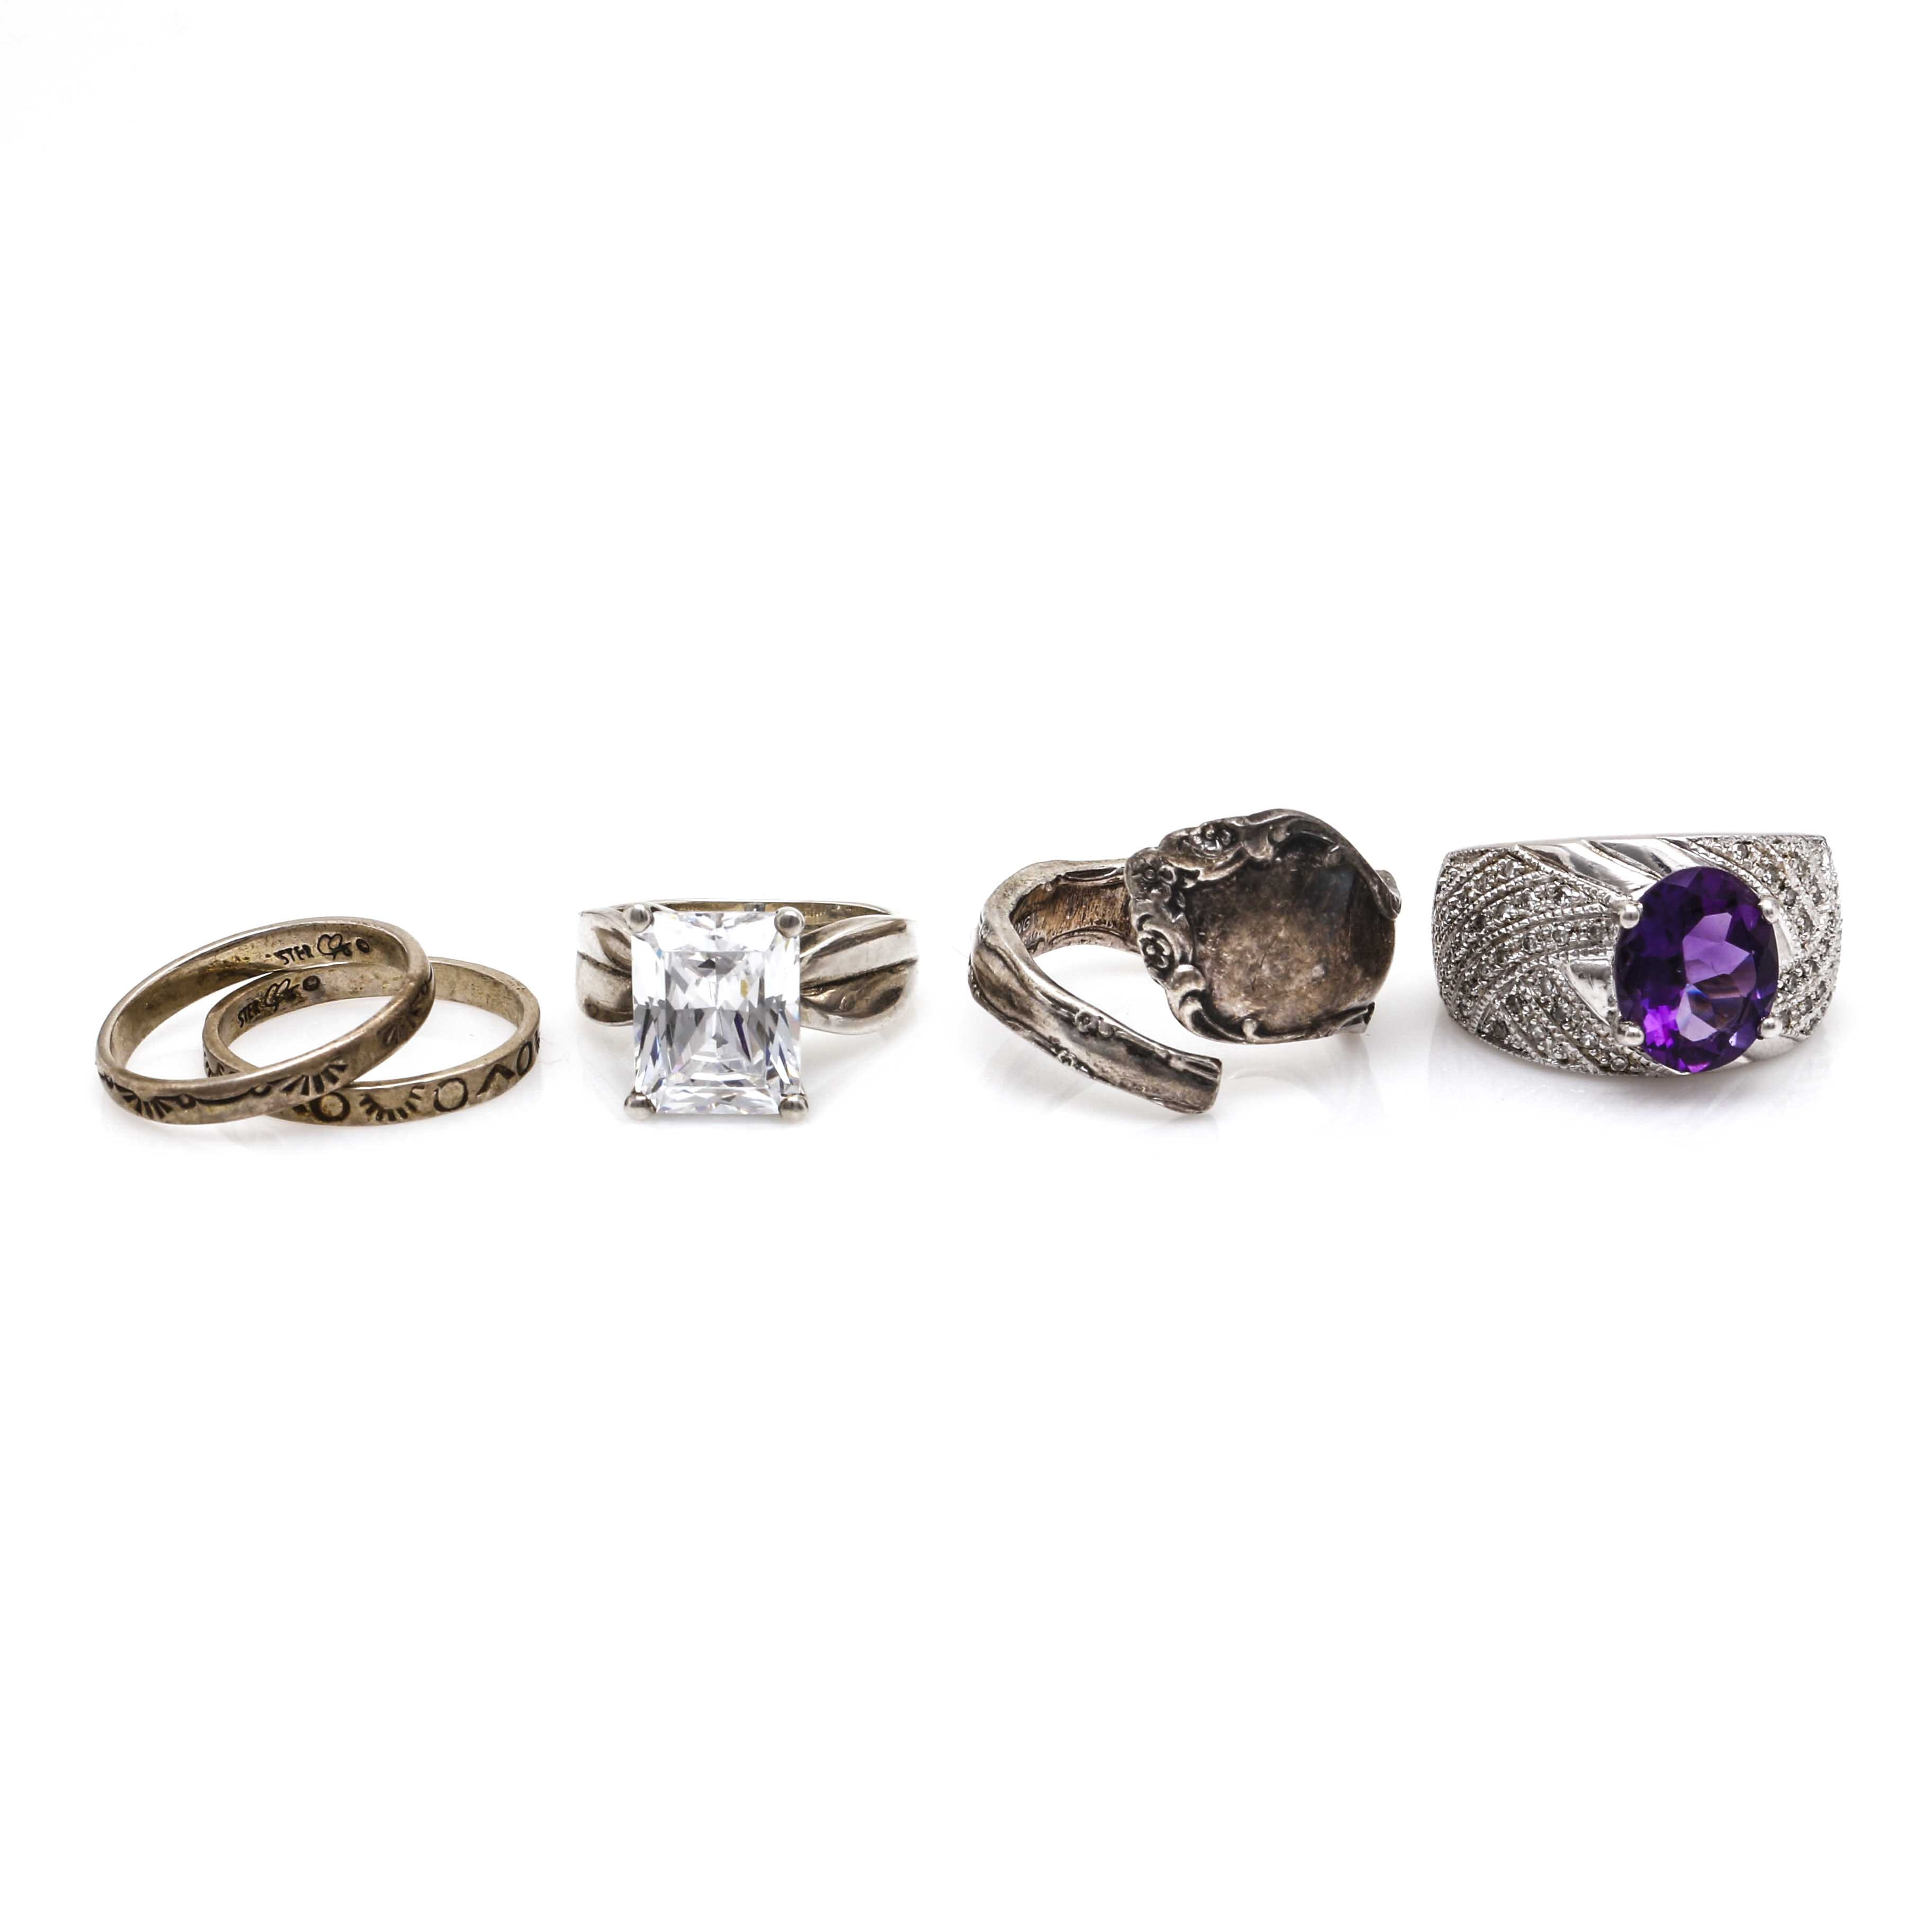 Collection of Sterling Silver Rings